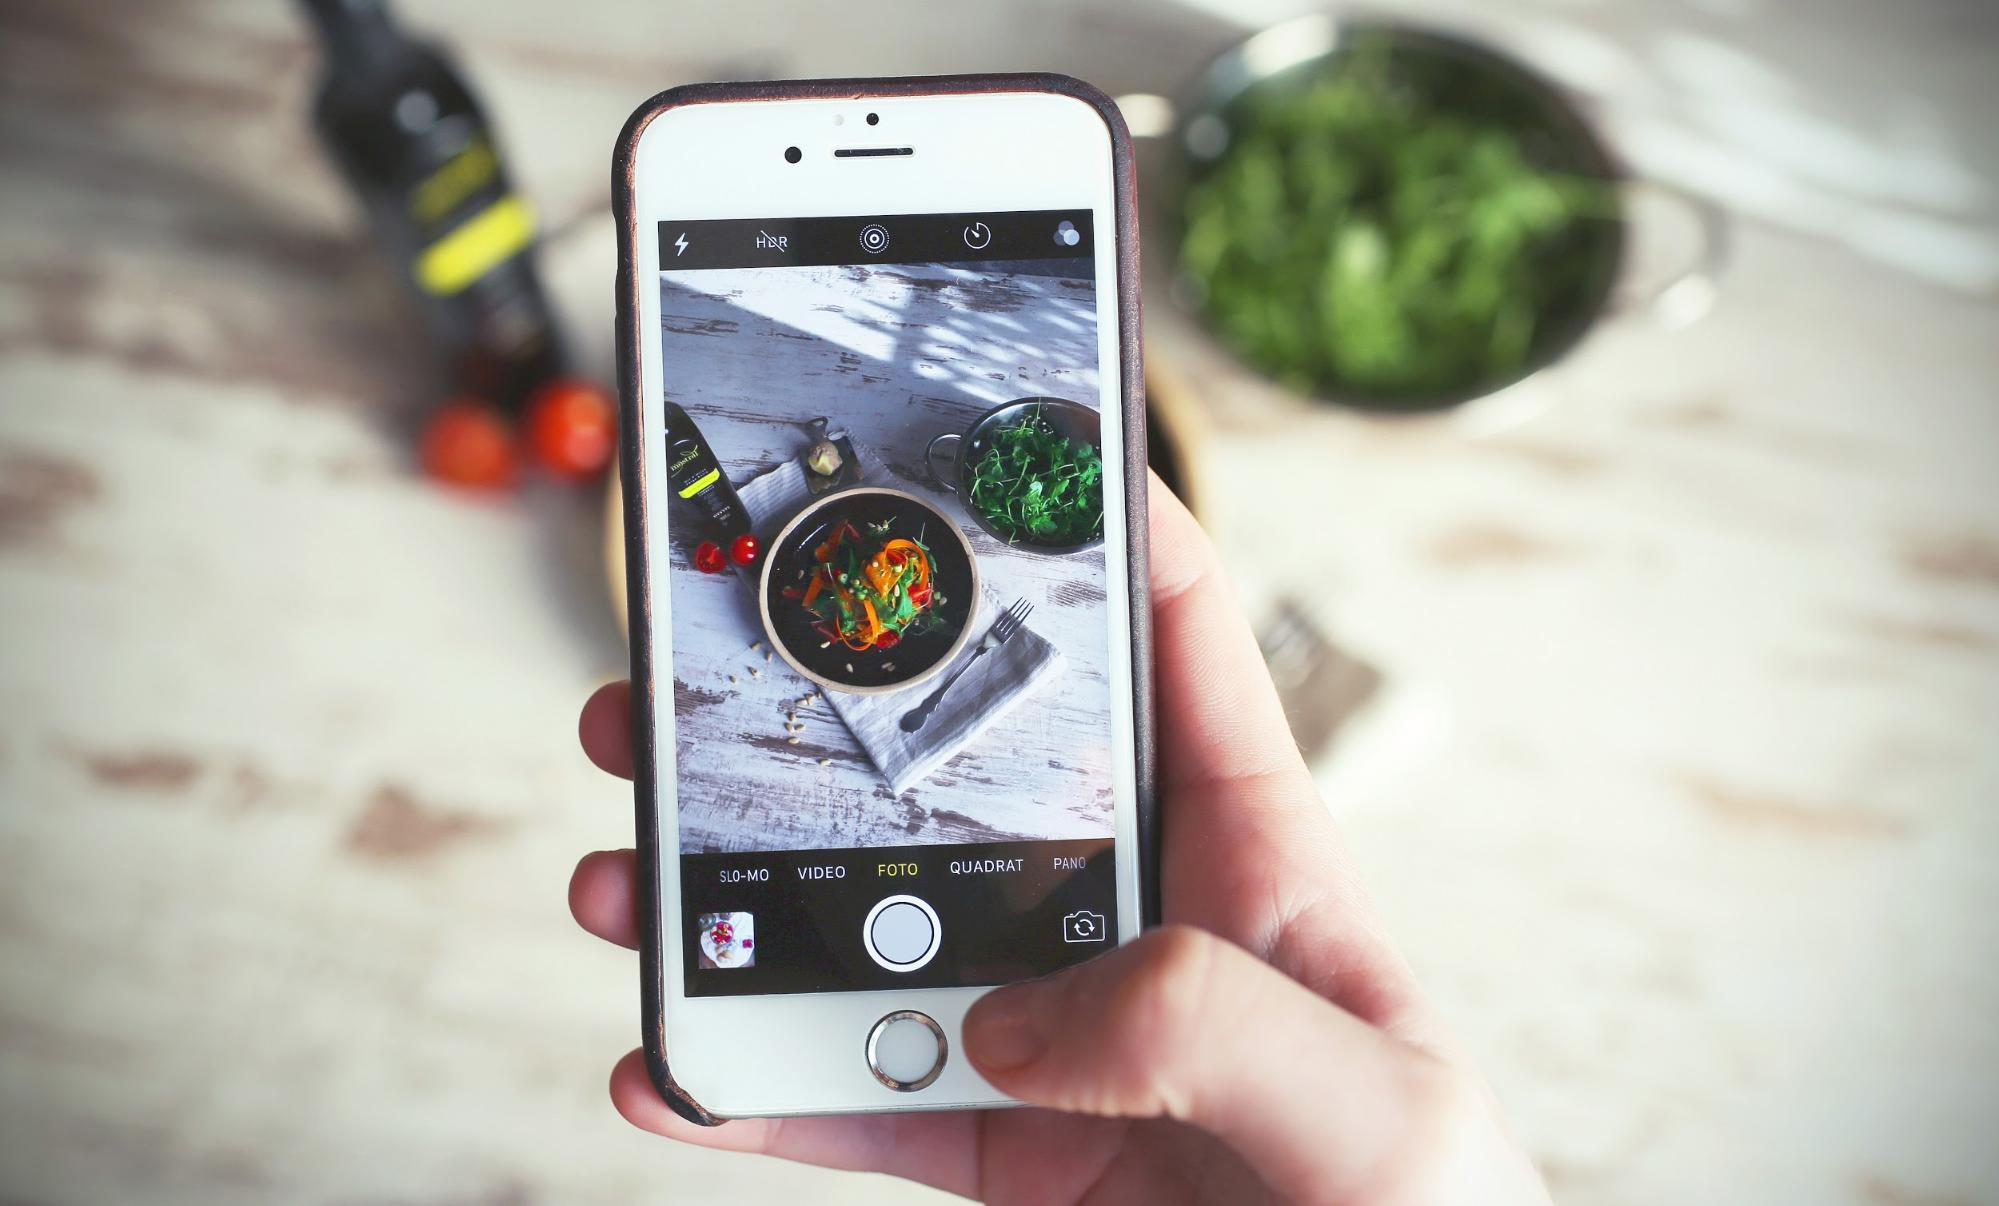 Taking a picture of food needing a foodie hashtag